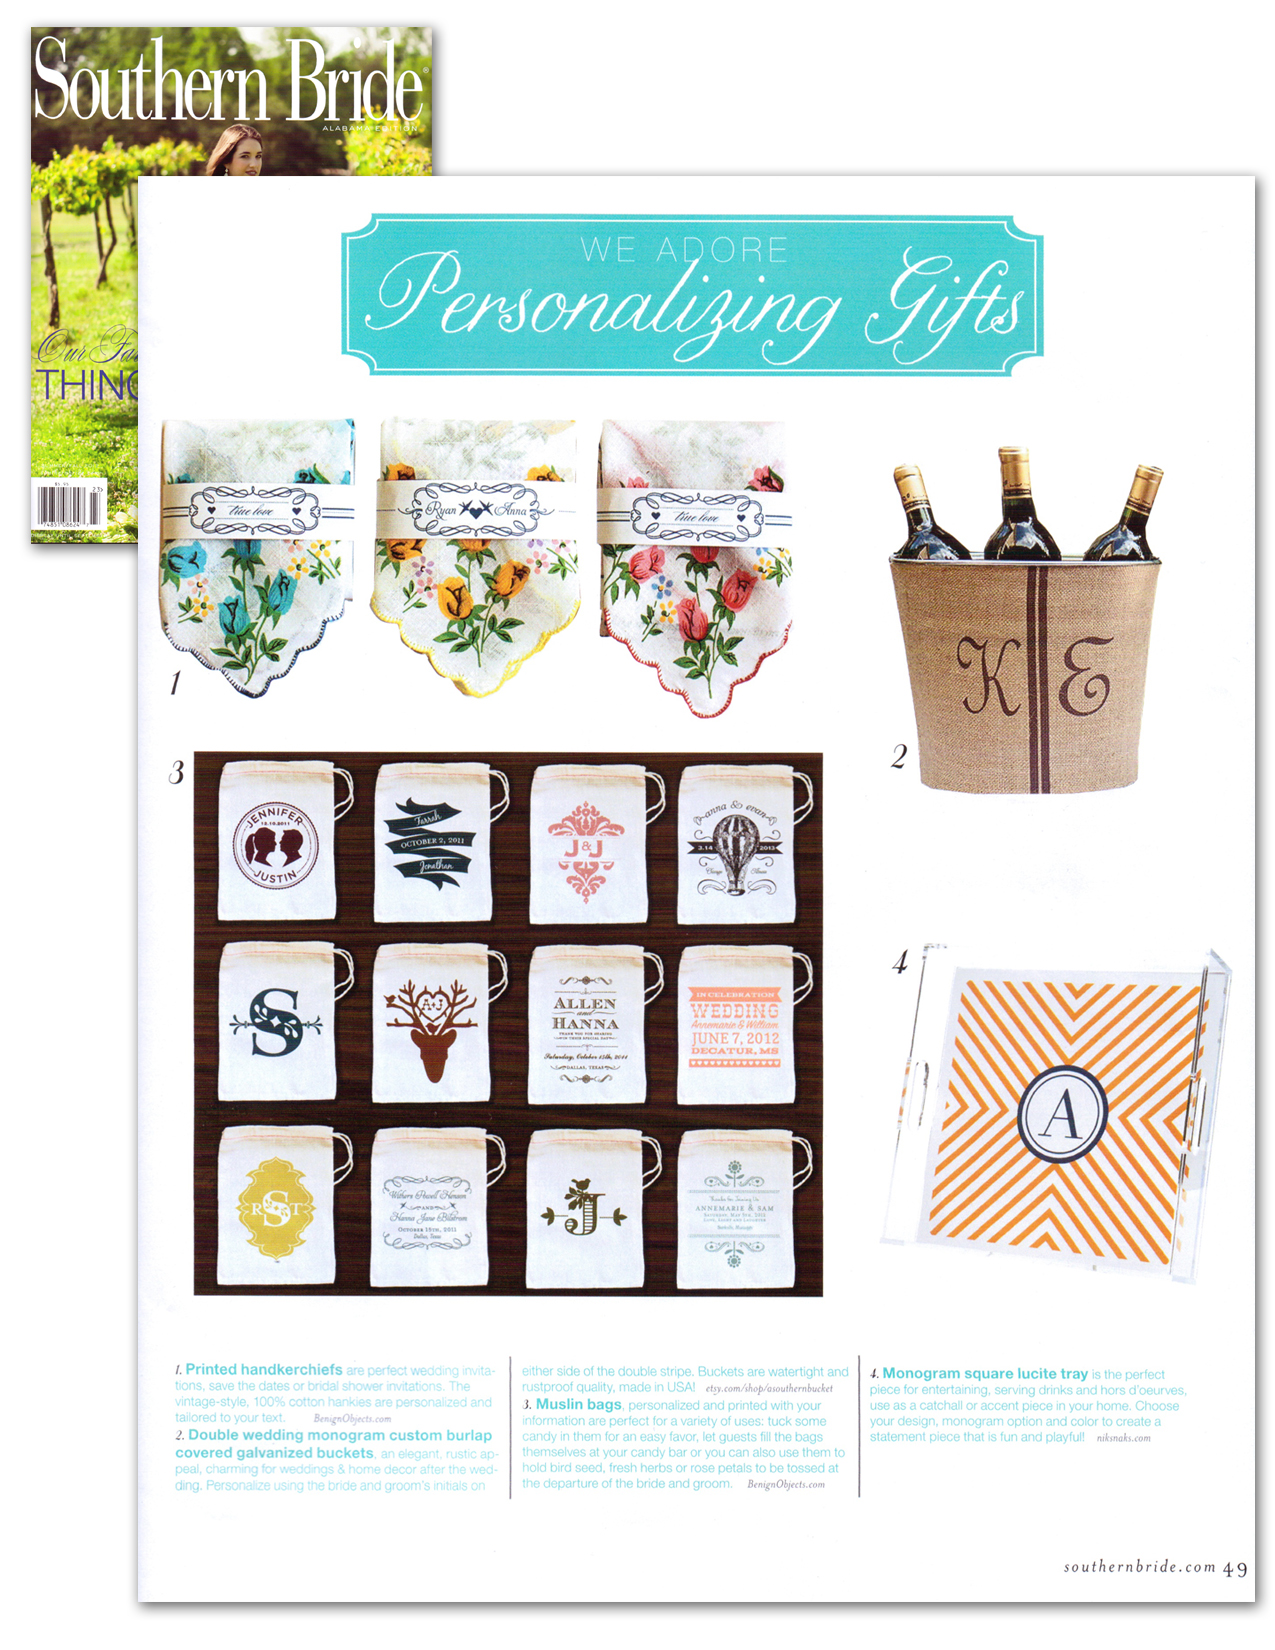 Southern Bride features favor bags by Benign Objects. Summer 2012